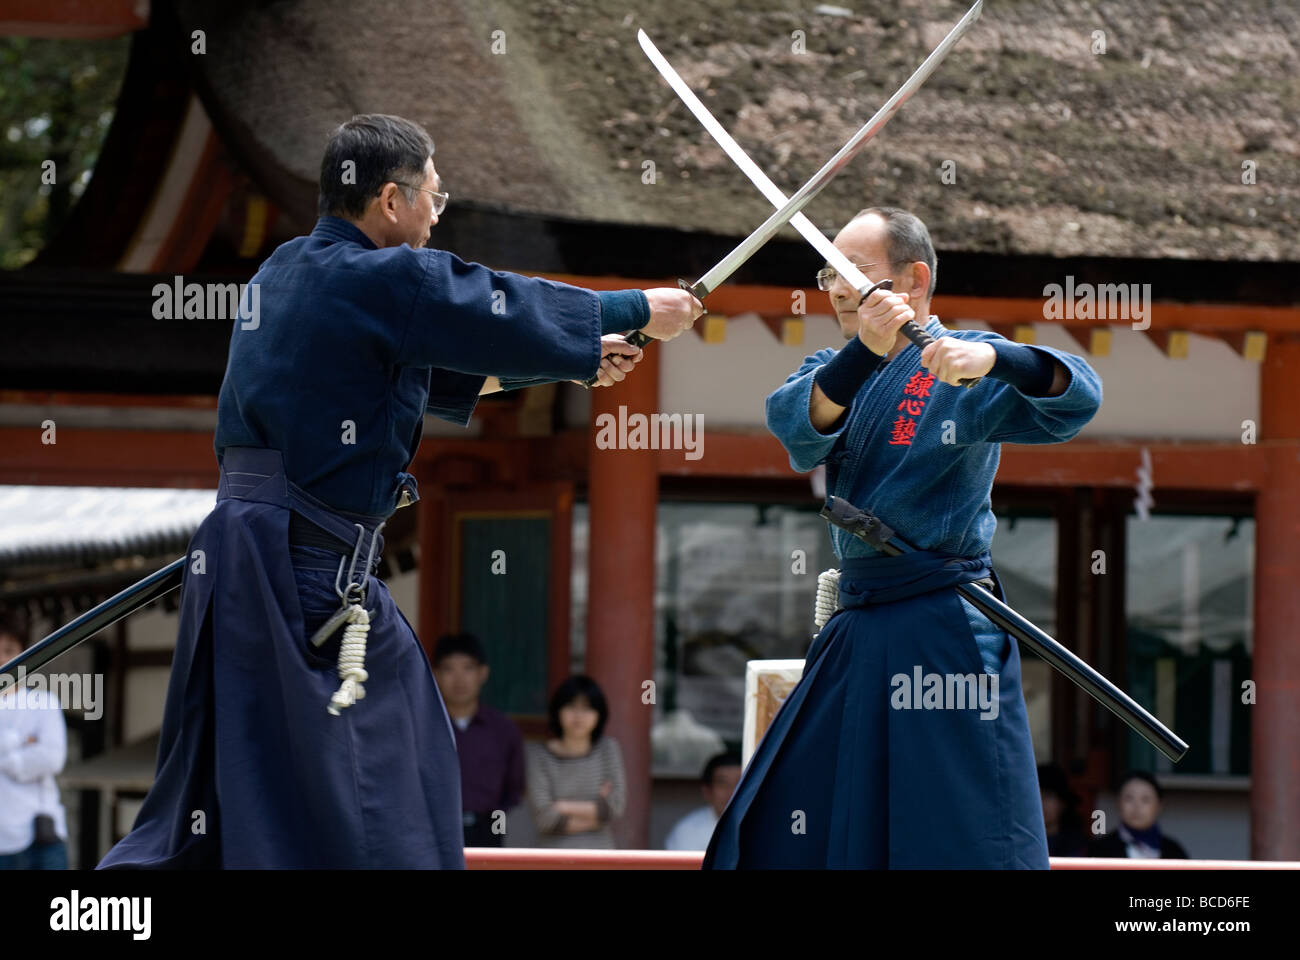 Two men engaged in a sword fight using real samurai swords